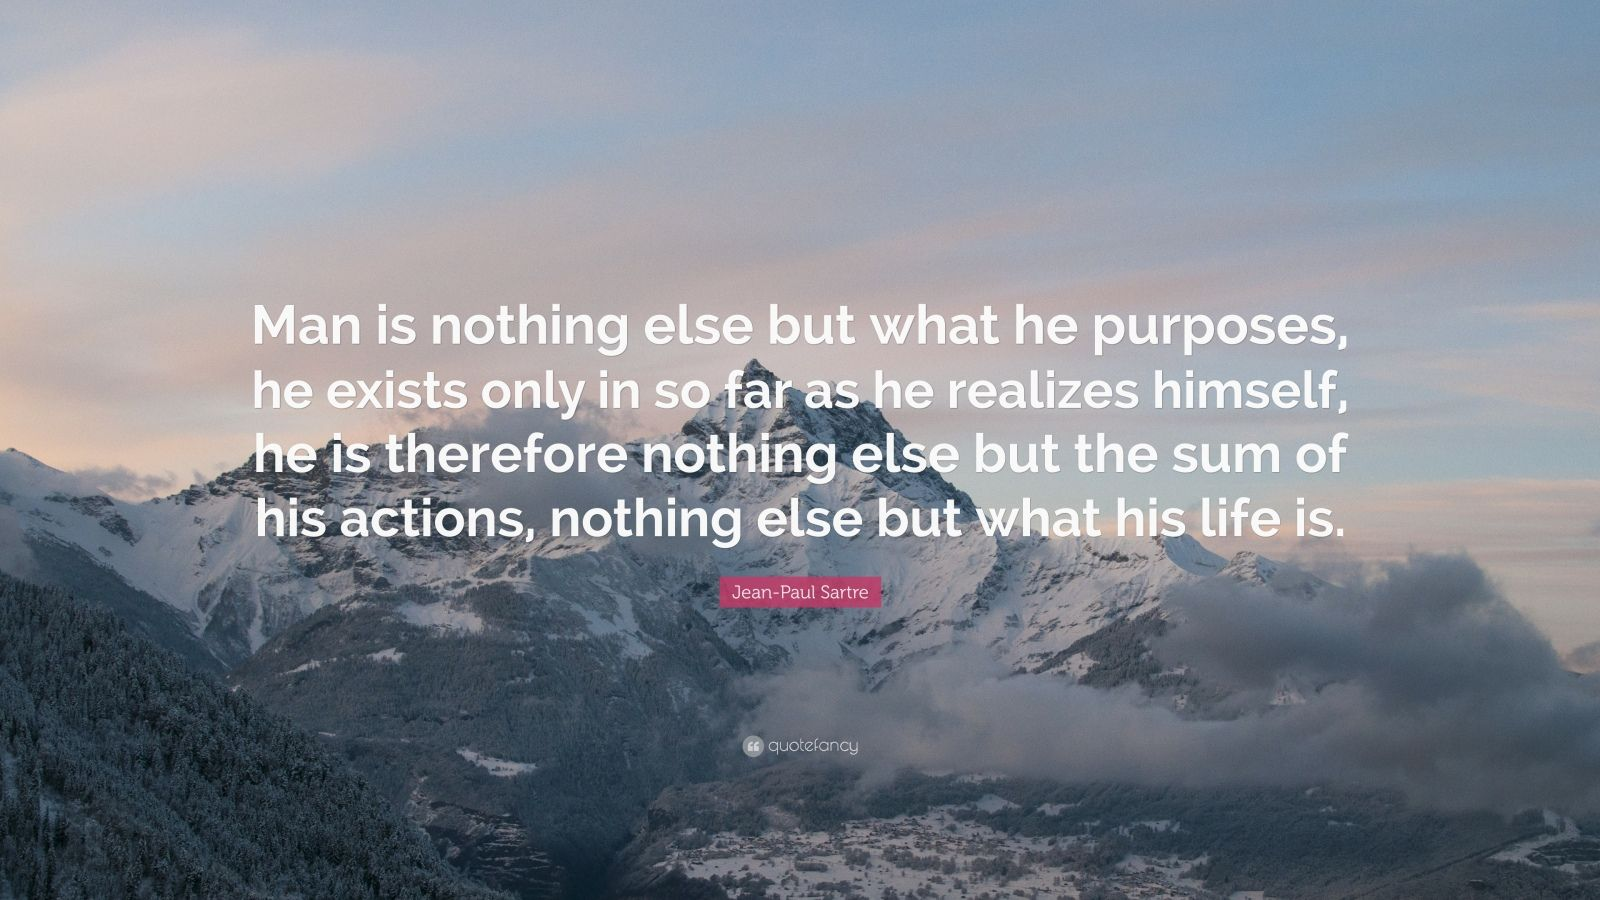 """Jean-Paul Sartre Quote: """"Man is nothing else but what he purposes, he exists only in so far as he realizes himself, he is therefore nothing else but the sum of his actions, nothing else but what his life is."""""""